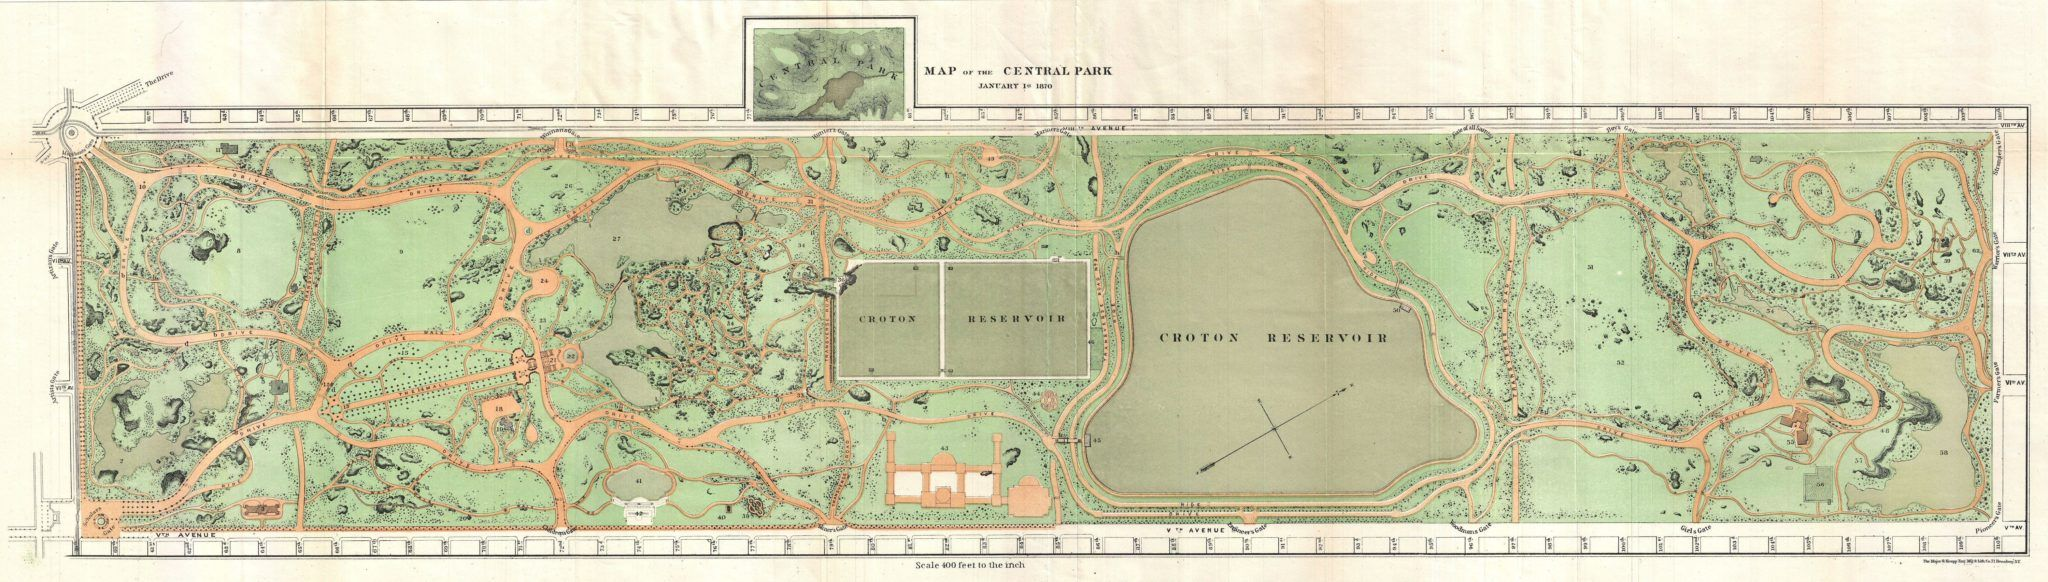 10 Design Principles Of Frederick Law Olmsted The Father Of American Landscape Architecture Thi Frederick Law Olmsted Central Park Manhattan Central Park Map